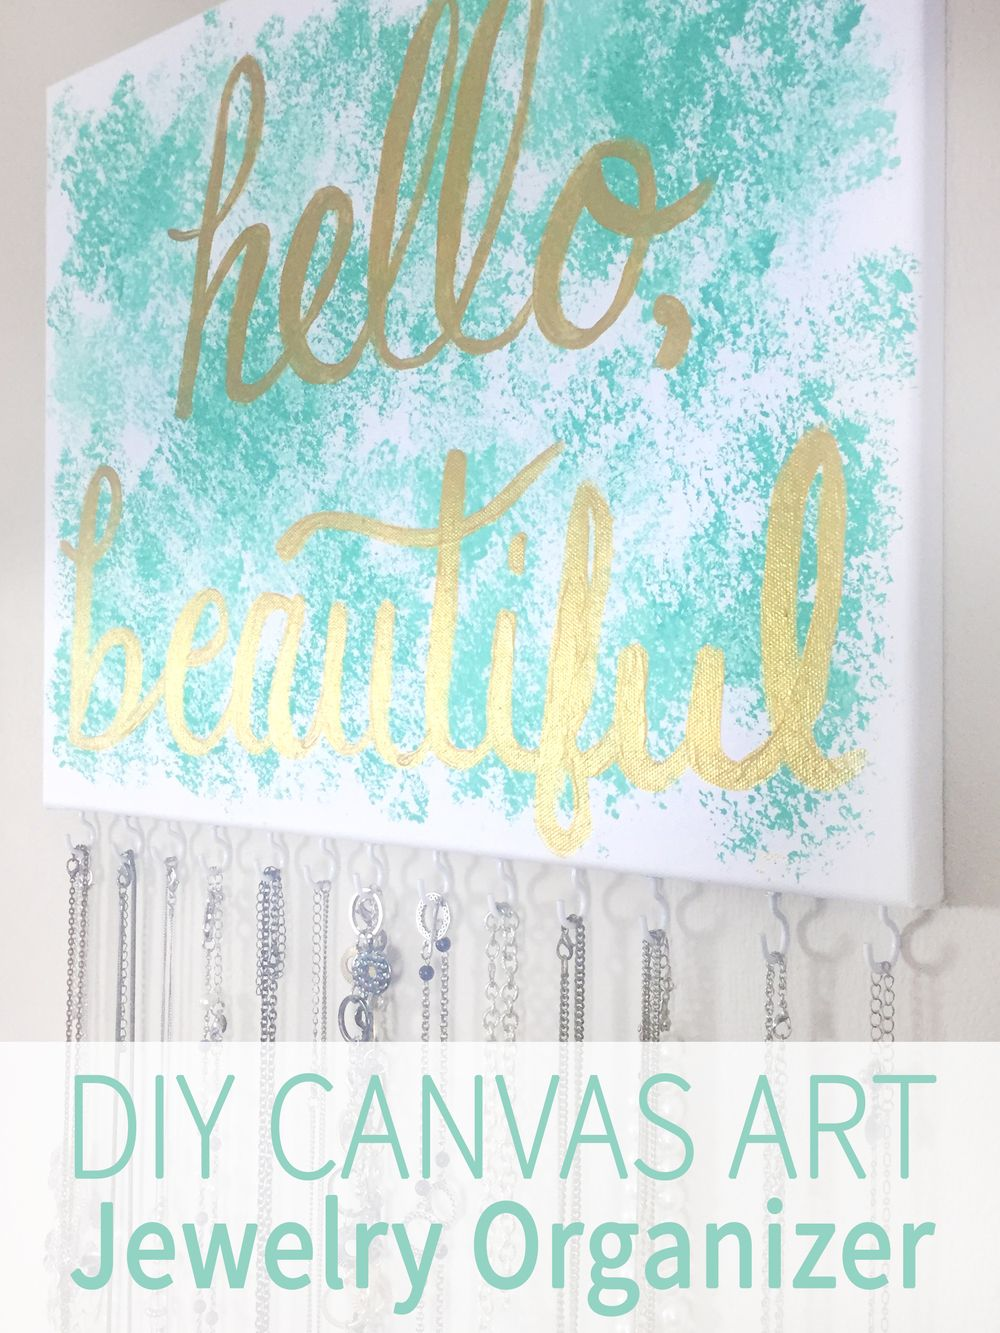 Diy Necklace Holder Diy Canvas Jewelry Organizer Art Giveaway Diy Canvas Art Diy